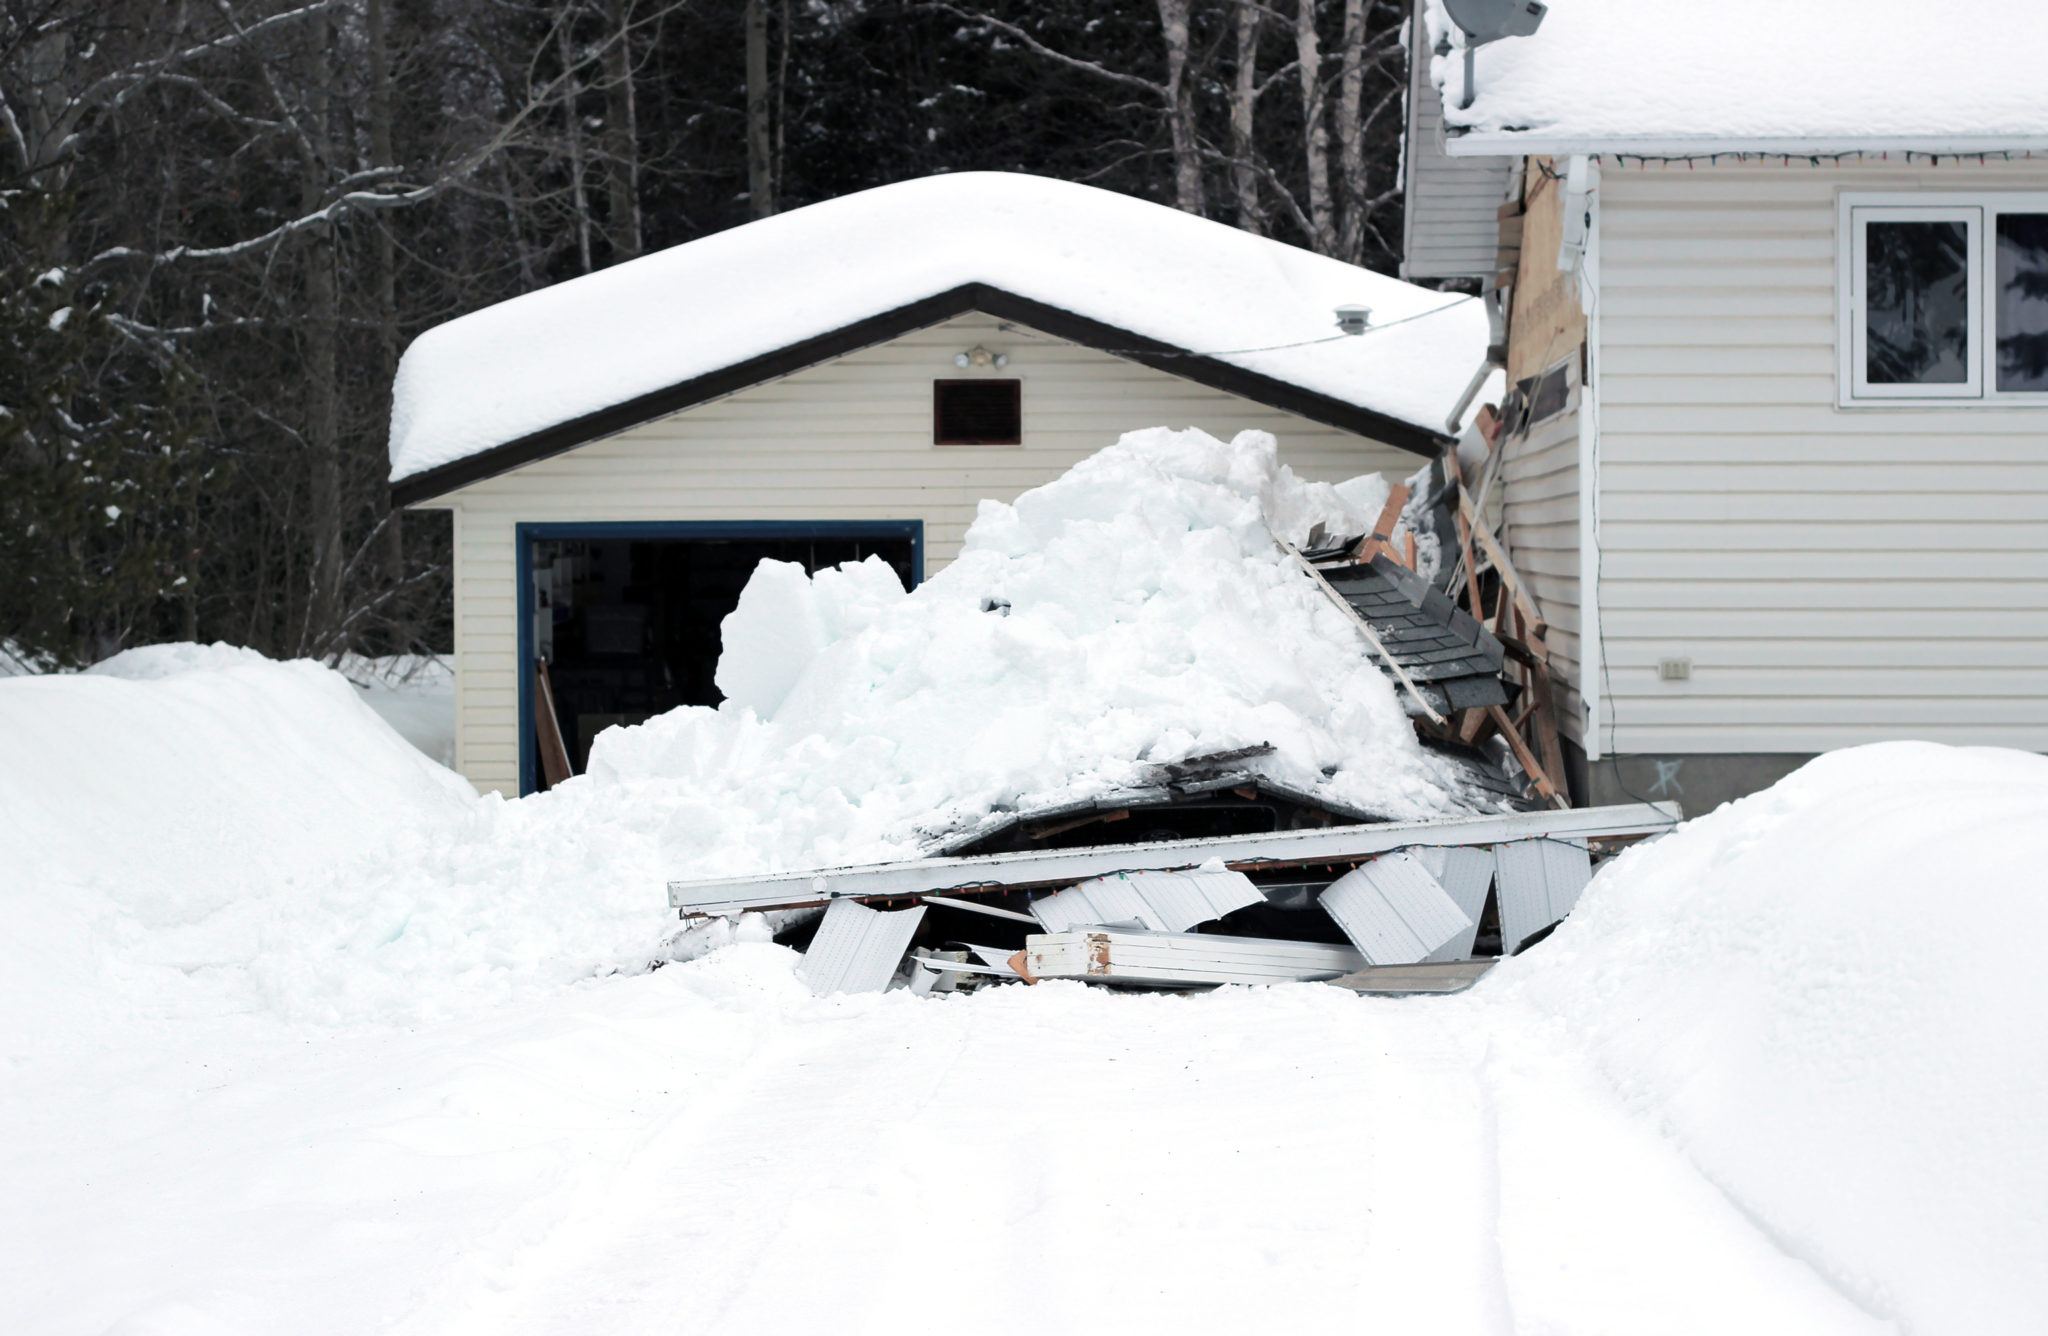 Collapsed roof a common winter hazzard